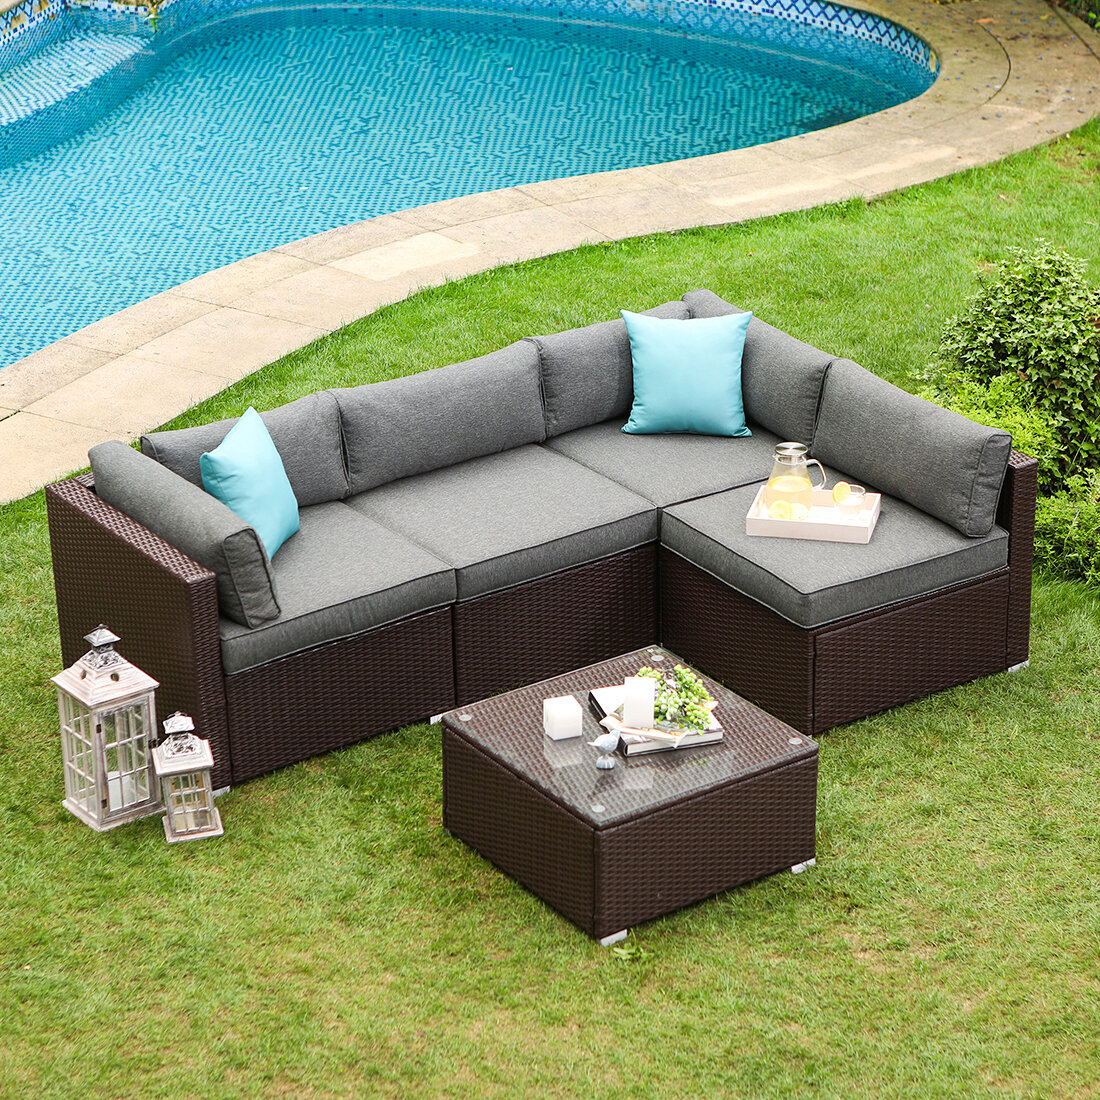 Wrought Studio Bavorov Outdoor Furniture 2 Piece Rattan Sectional Seating Group With Cushions Reviews Wayfair